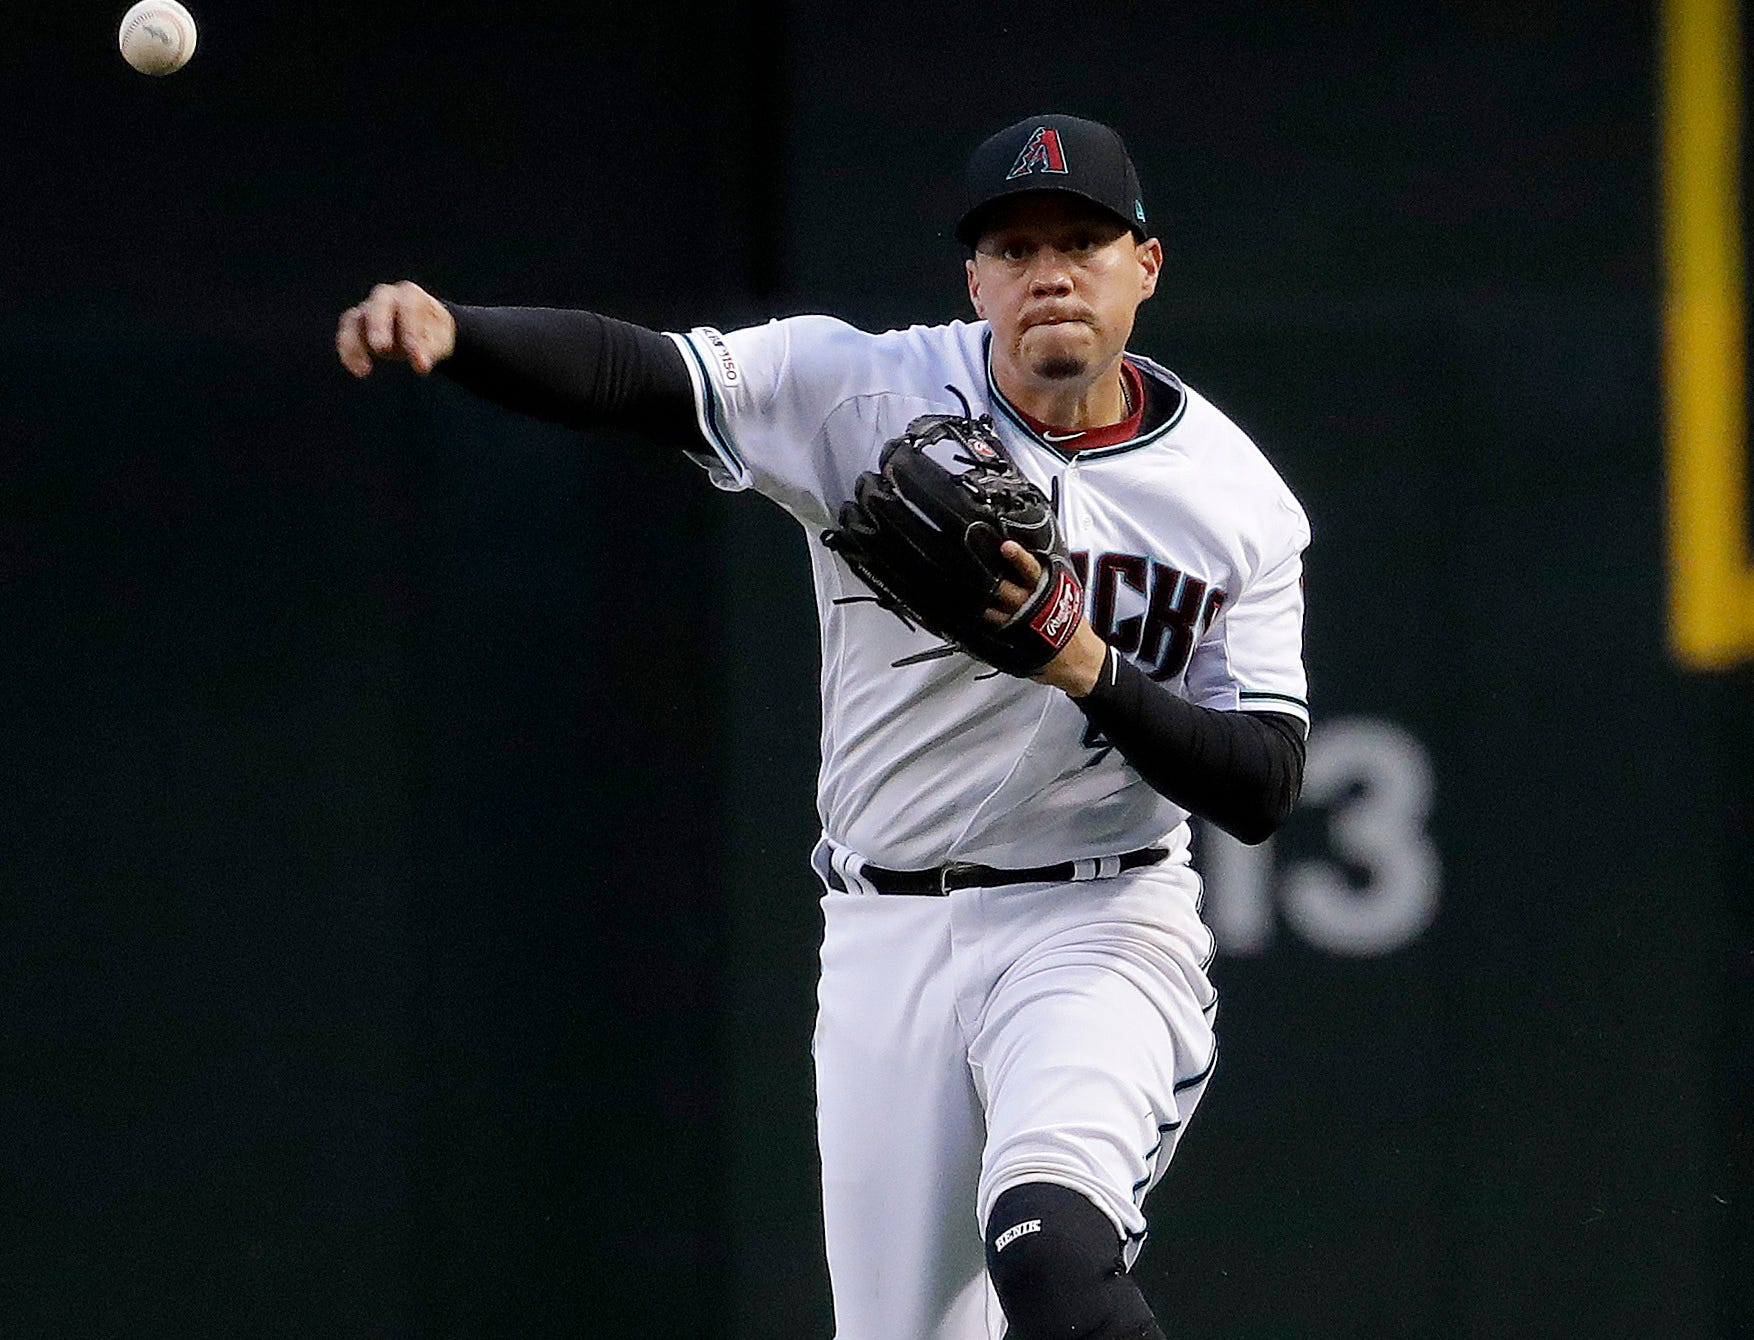 Arizona Diamondbacks' Wilmer Flores shows to first against the San Diego Padres during the first inning of a baseball game, Friday, April 12, 2019, in Phoenix. (AP Photo/Matt York)